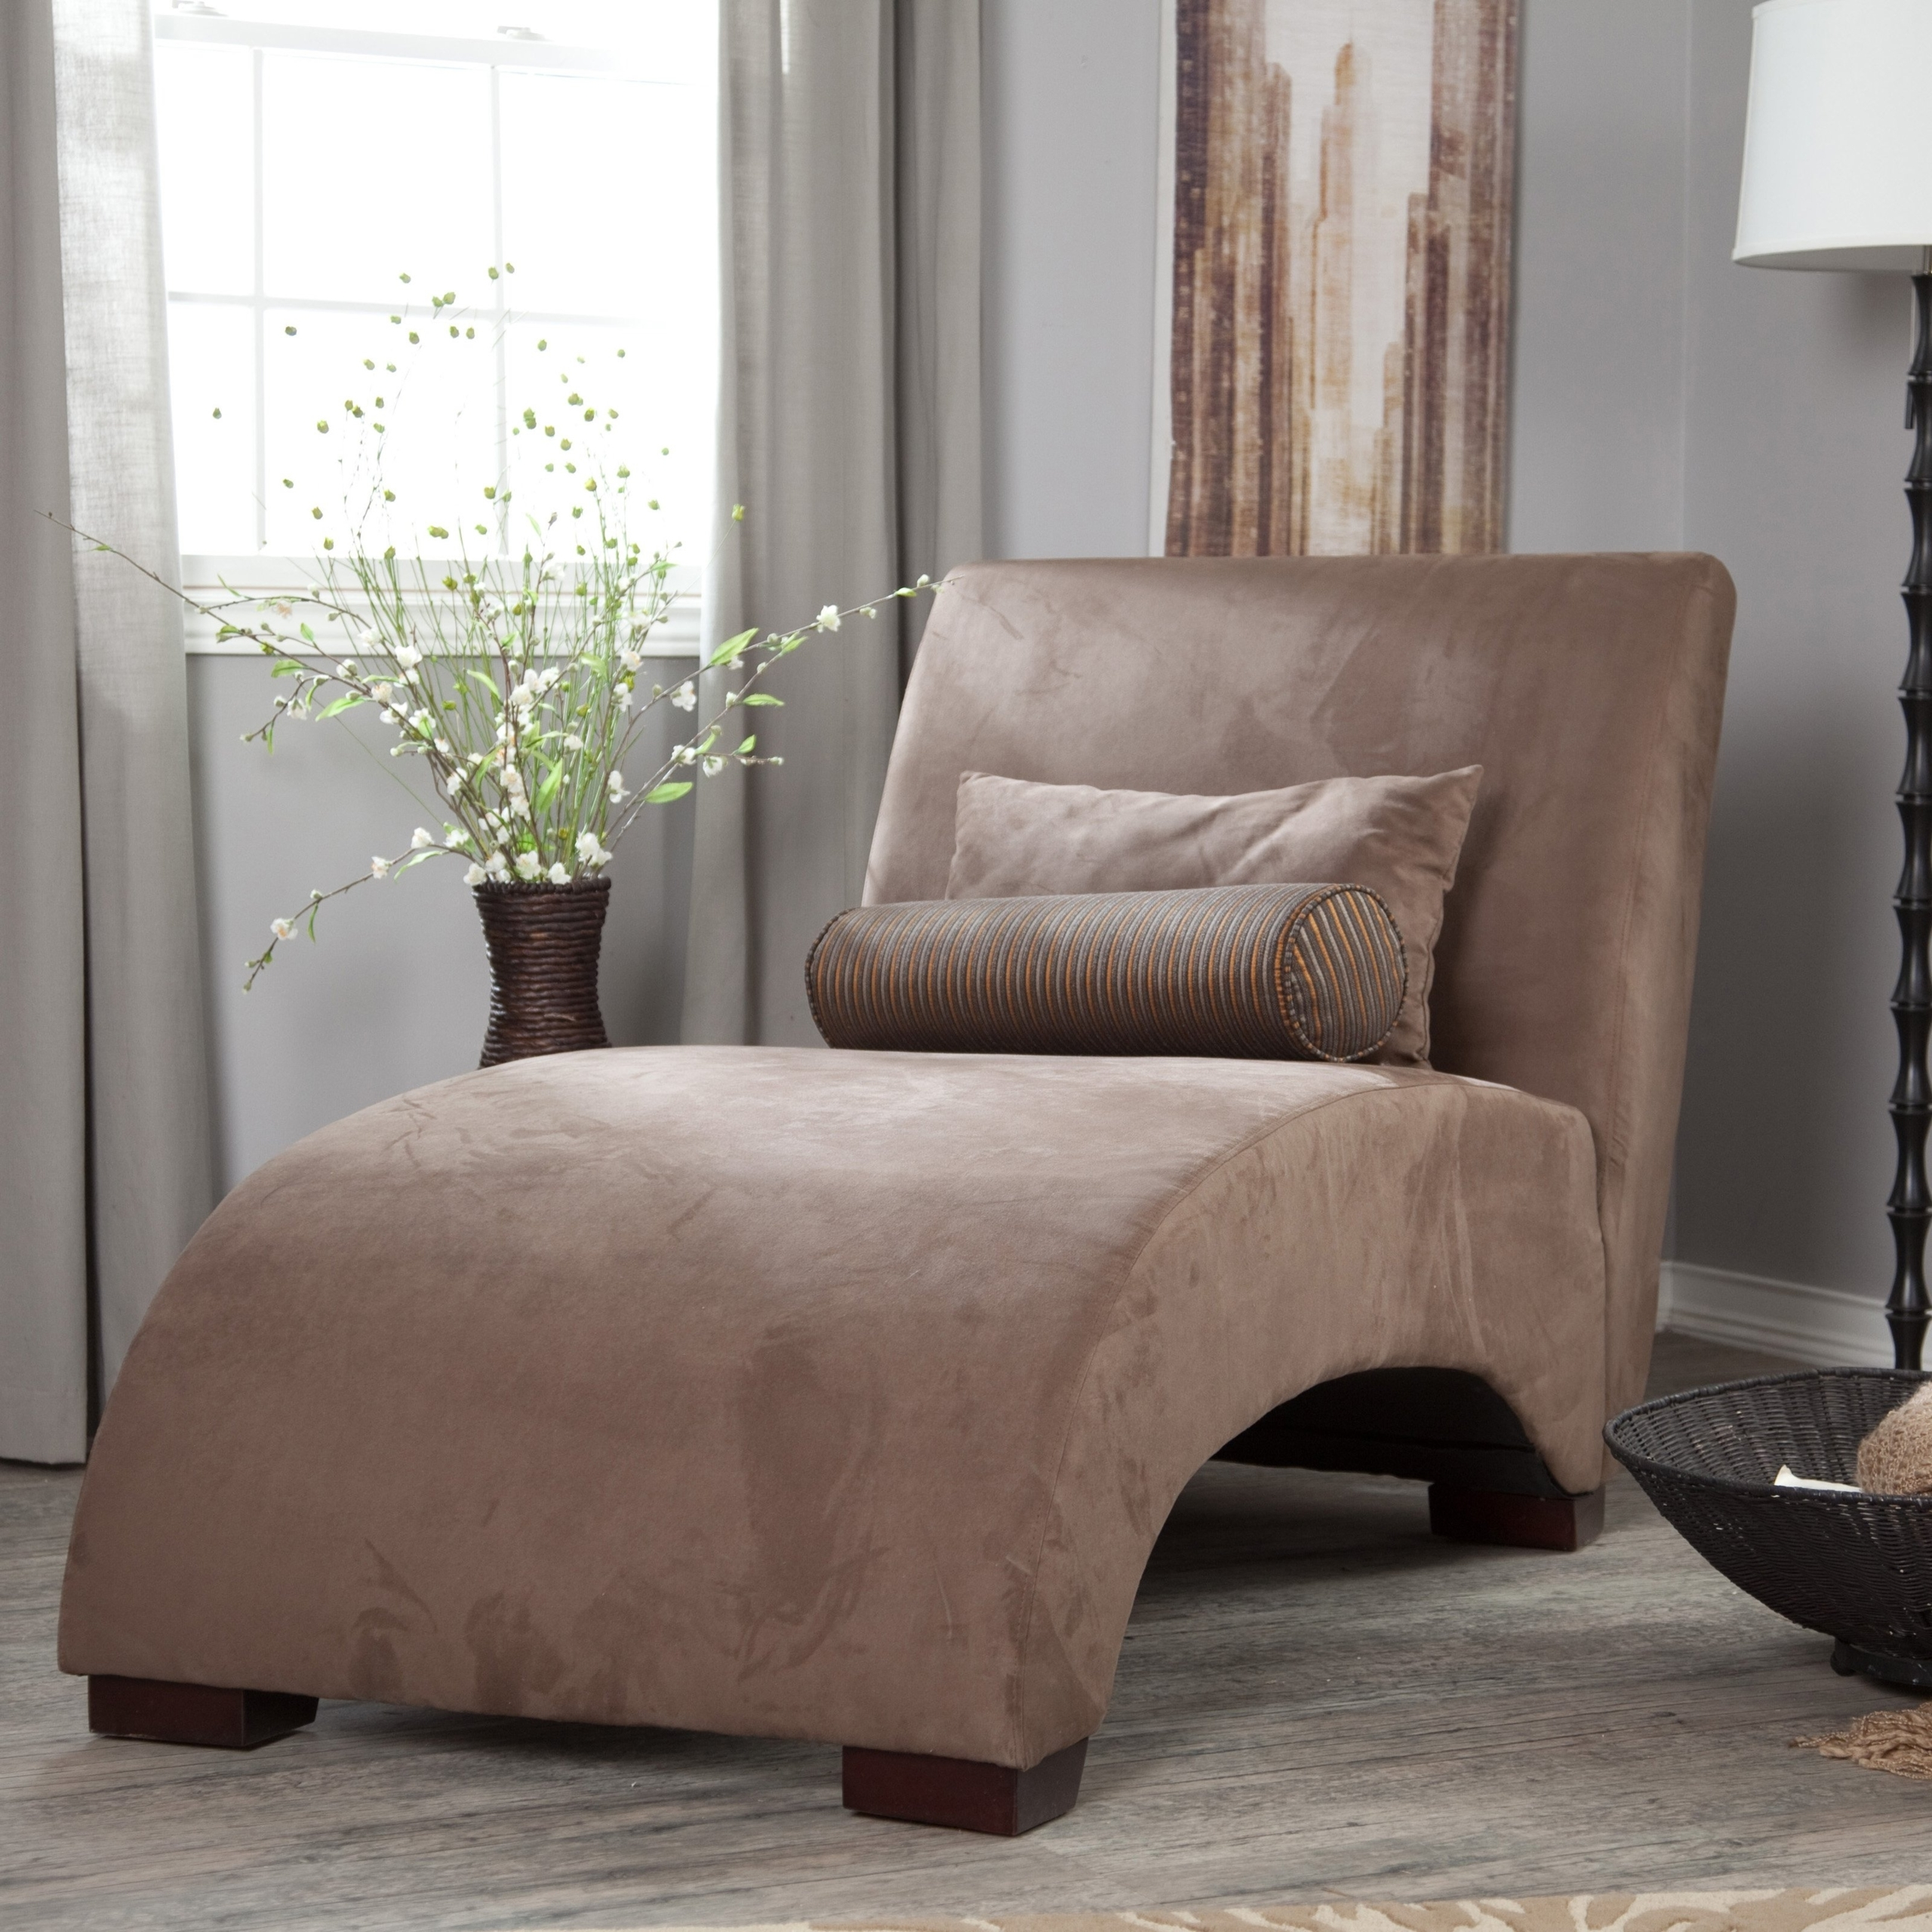 Lounge Chairs For Bedroom Ideas About Oversized Chair On ..